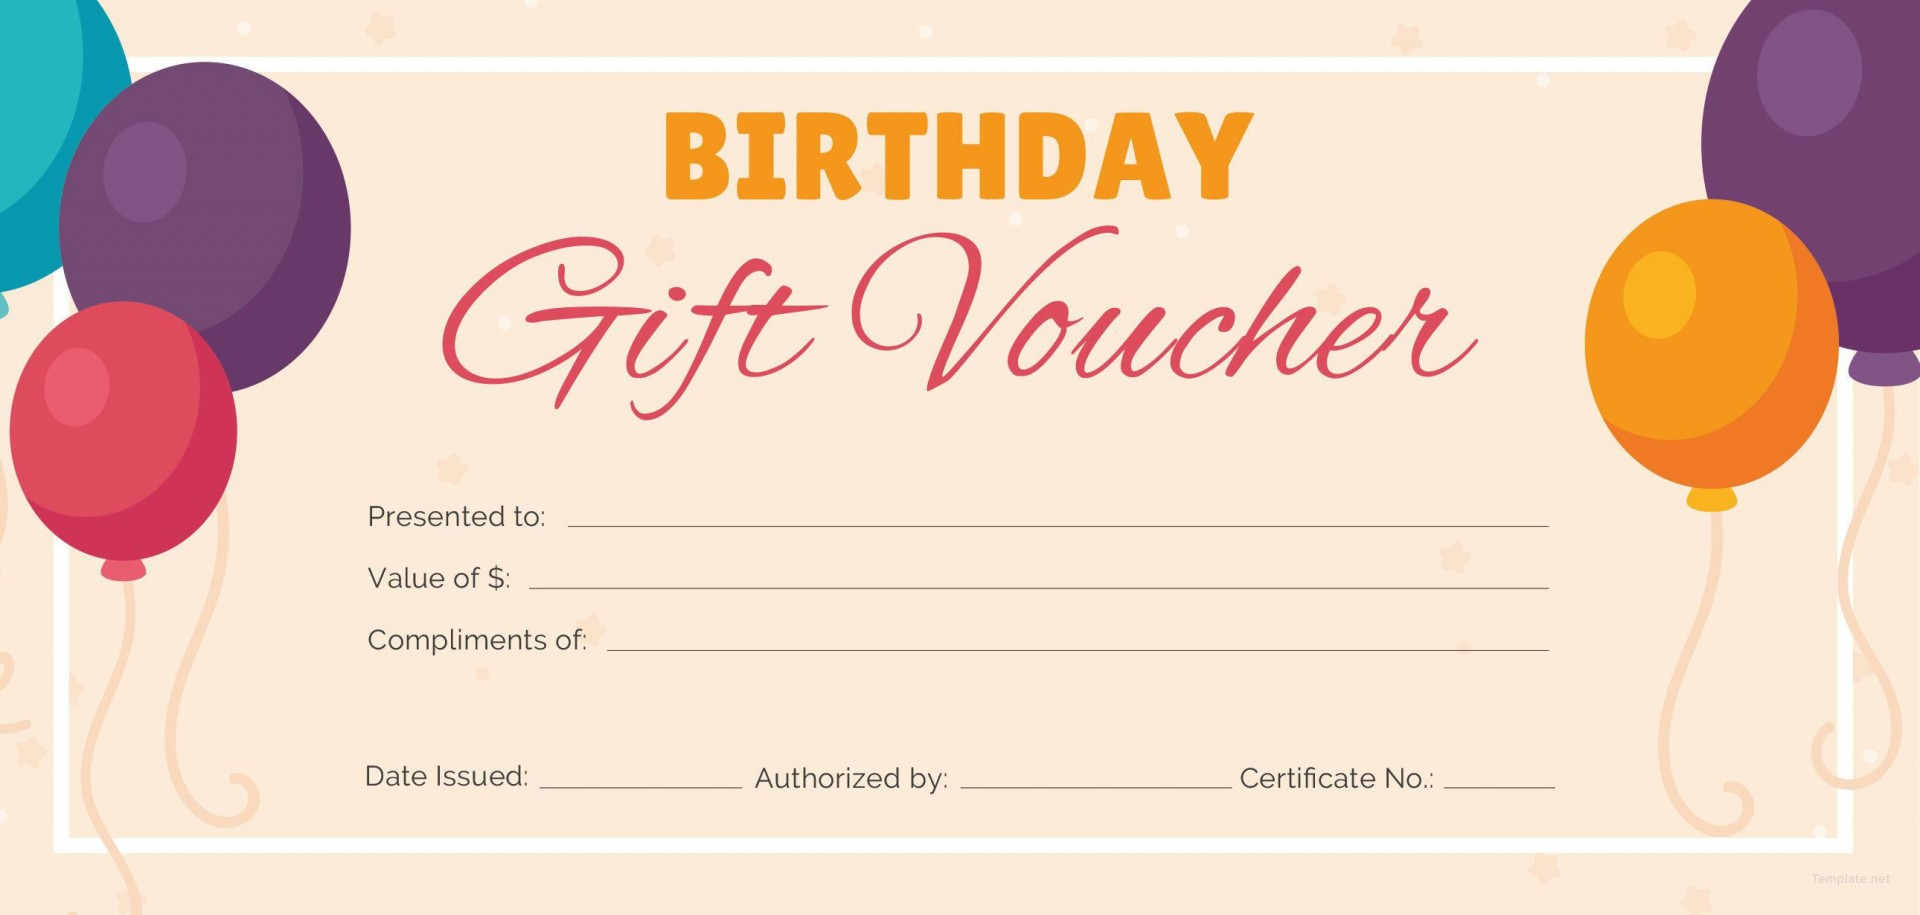 003 Beautiful Free Printable Template For Gift Certificate Highest Clarity  Voucher1920